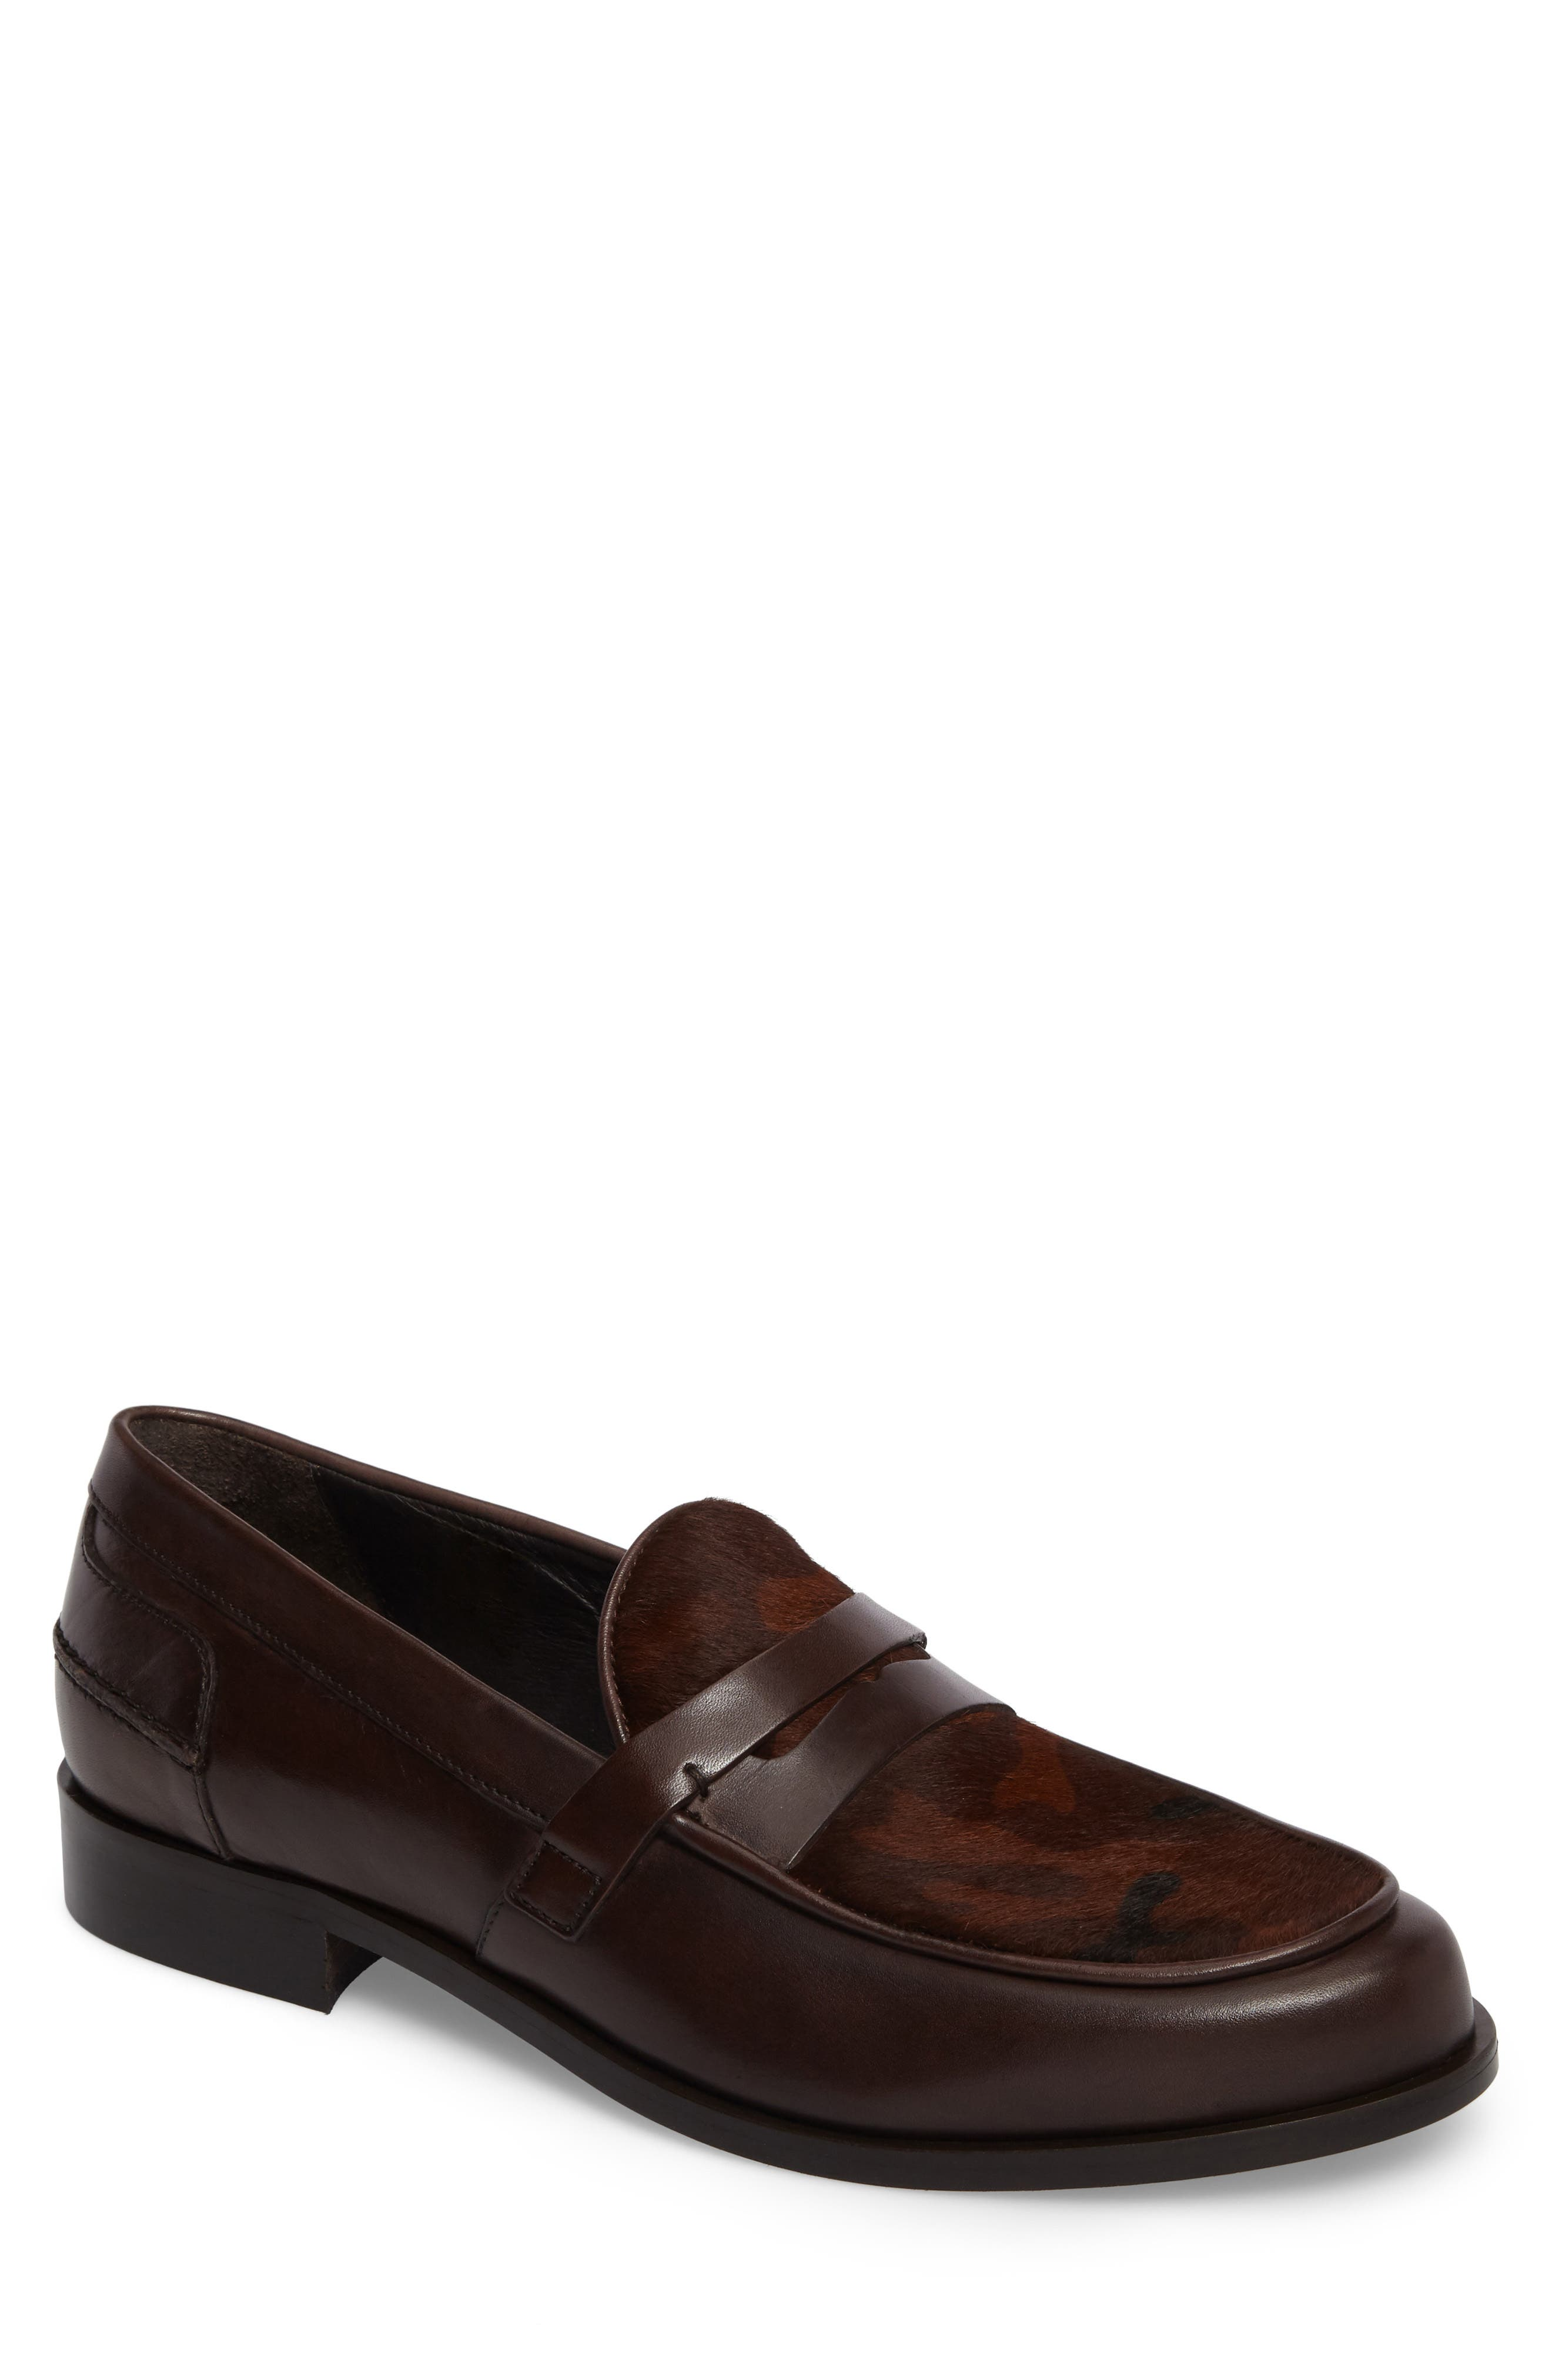 Donald J Pliner Sawyer Penny Loafer (Men)